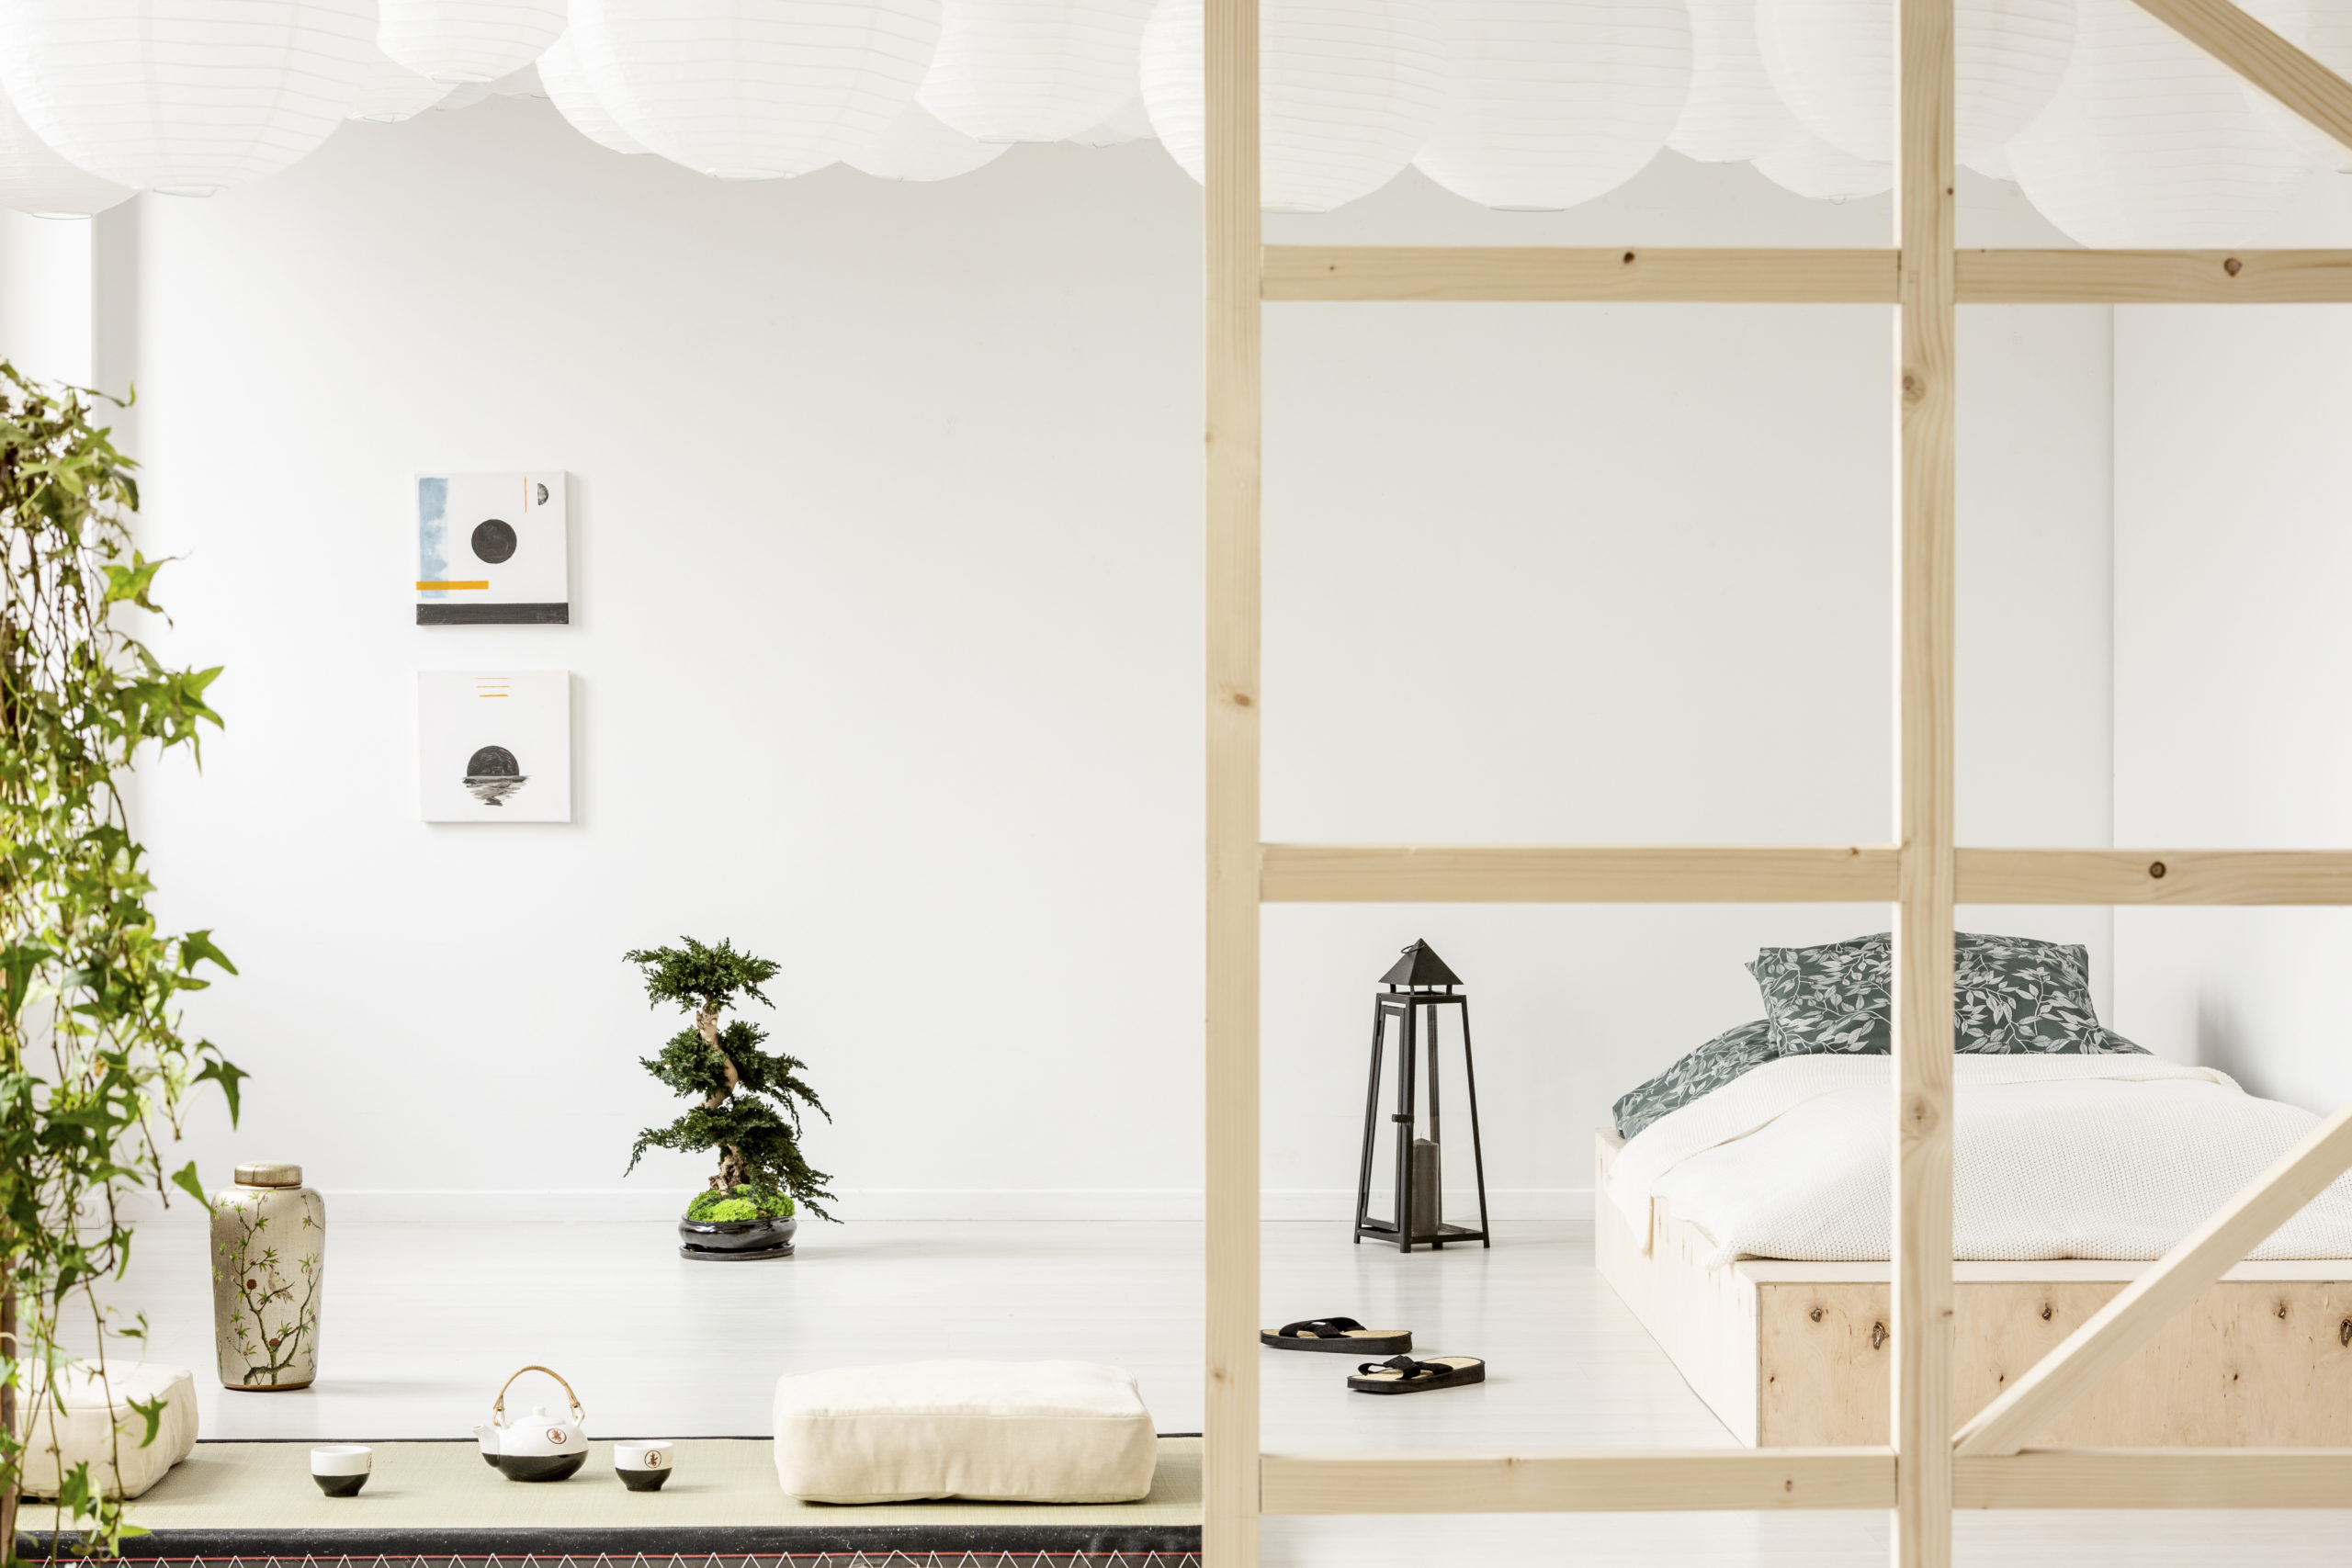 Posters on white wall above bonsai in bedroom interior with lantern next to wooden bed. Real photo